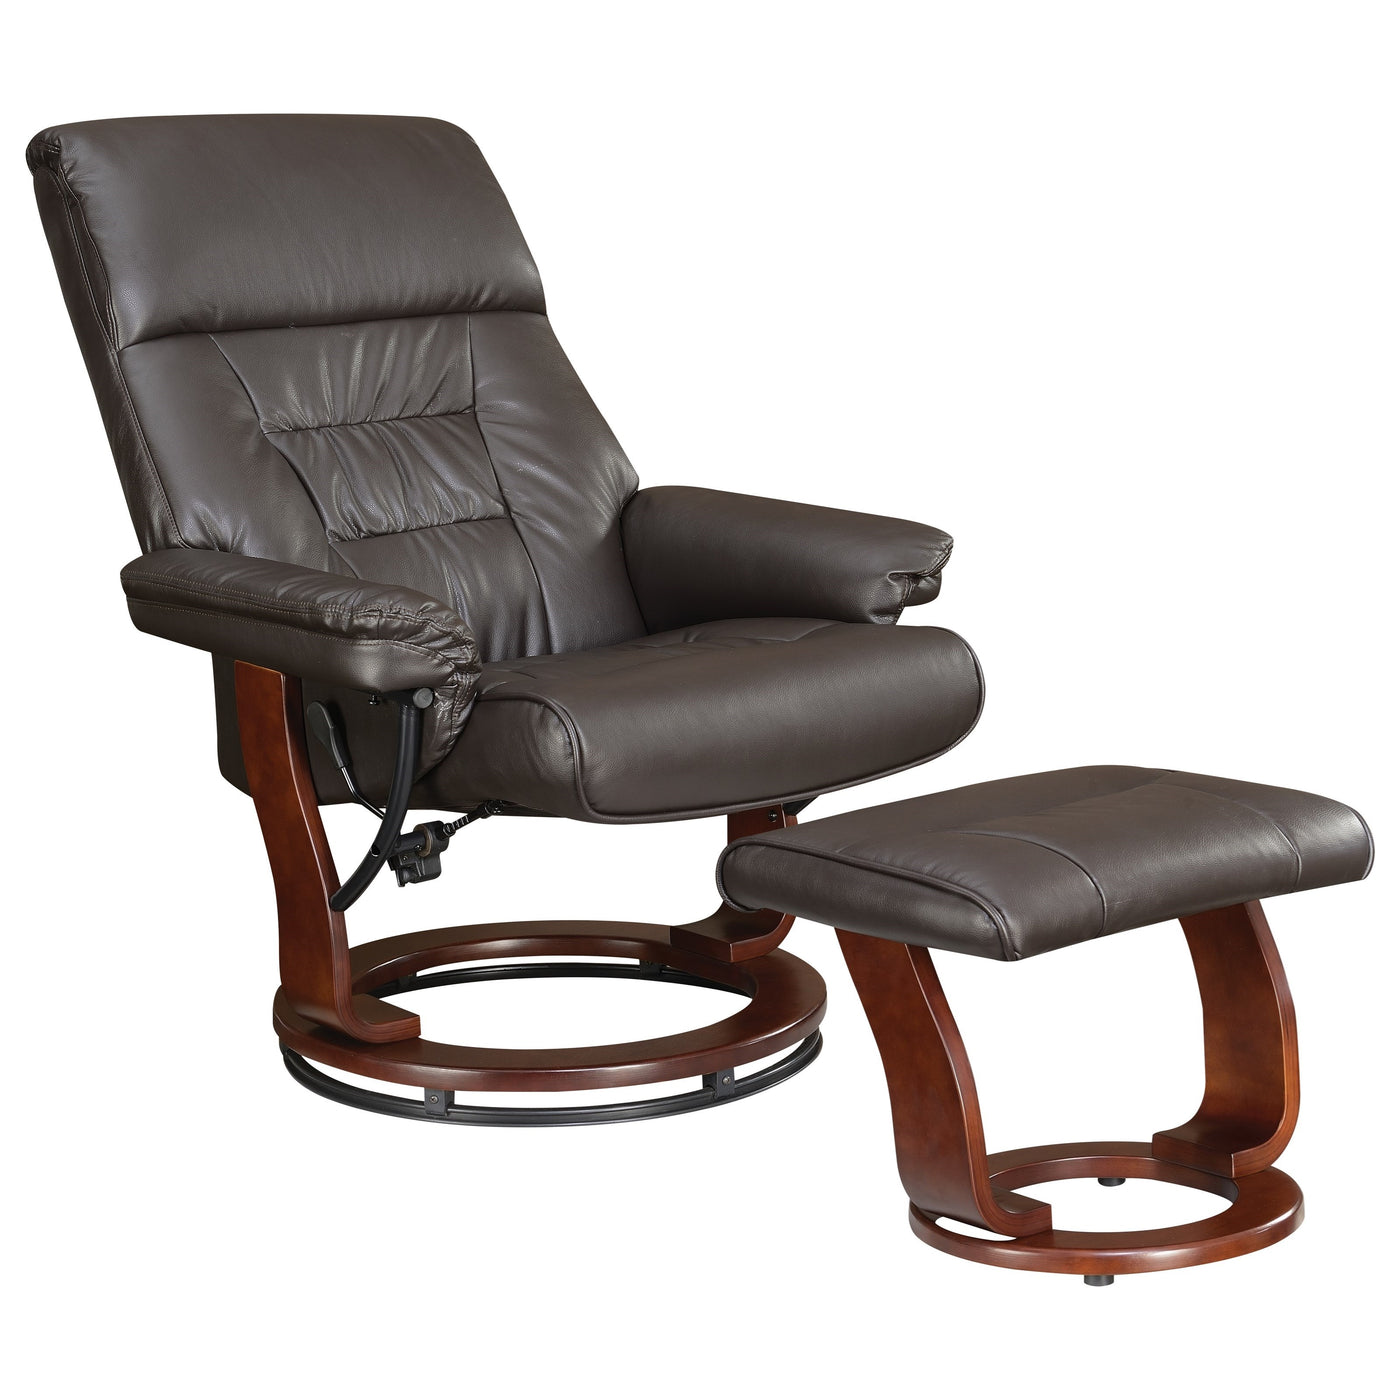 Astonishing Coaster Furniture Chocolate Glider Recliner Chair With Matching Ottoman Gmtry Best Dining Table And Chair Ideas Images Gmtryco